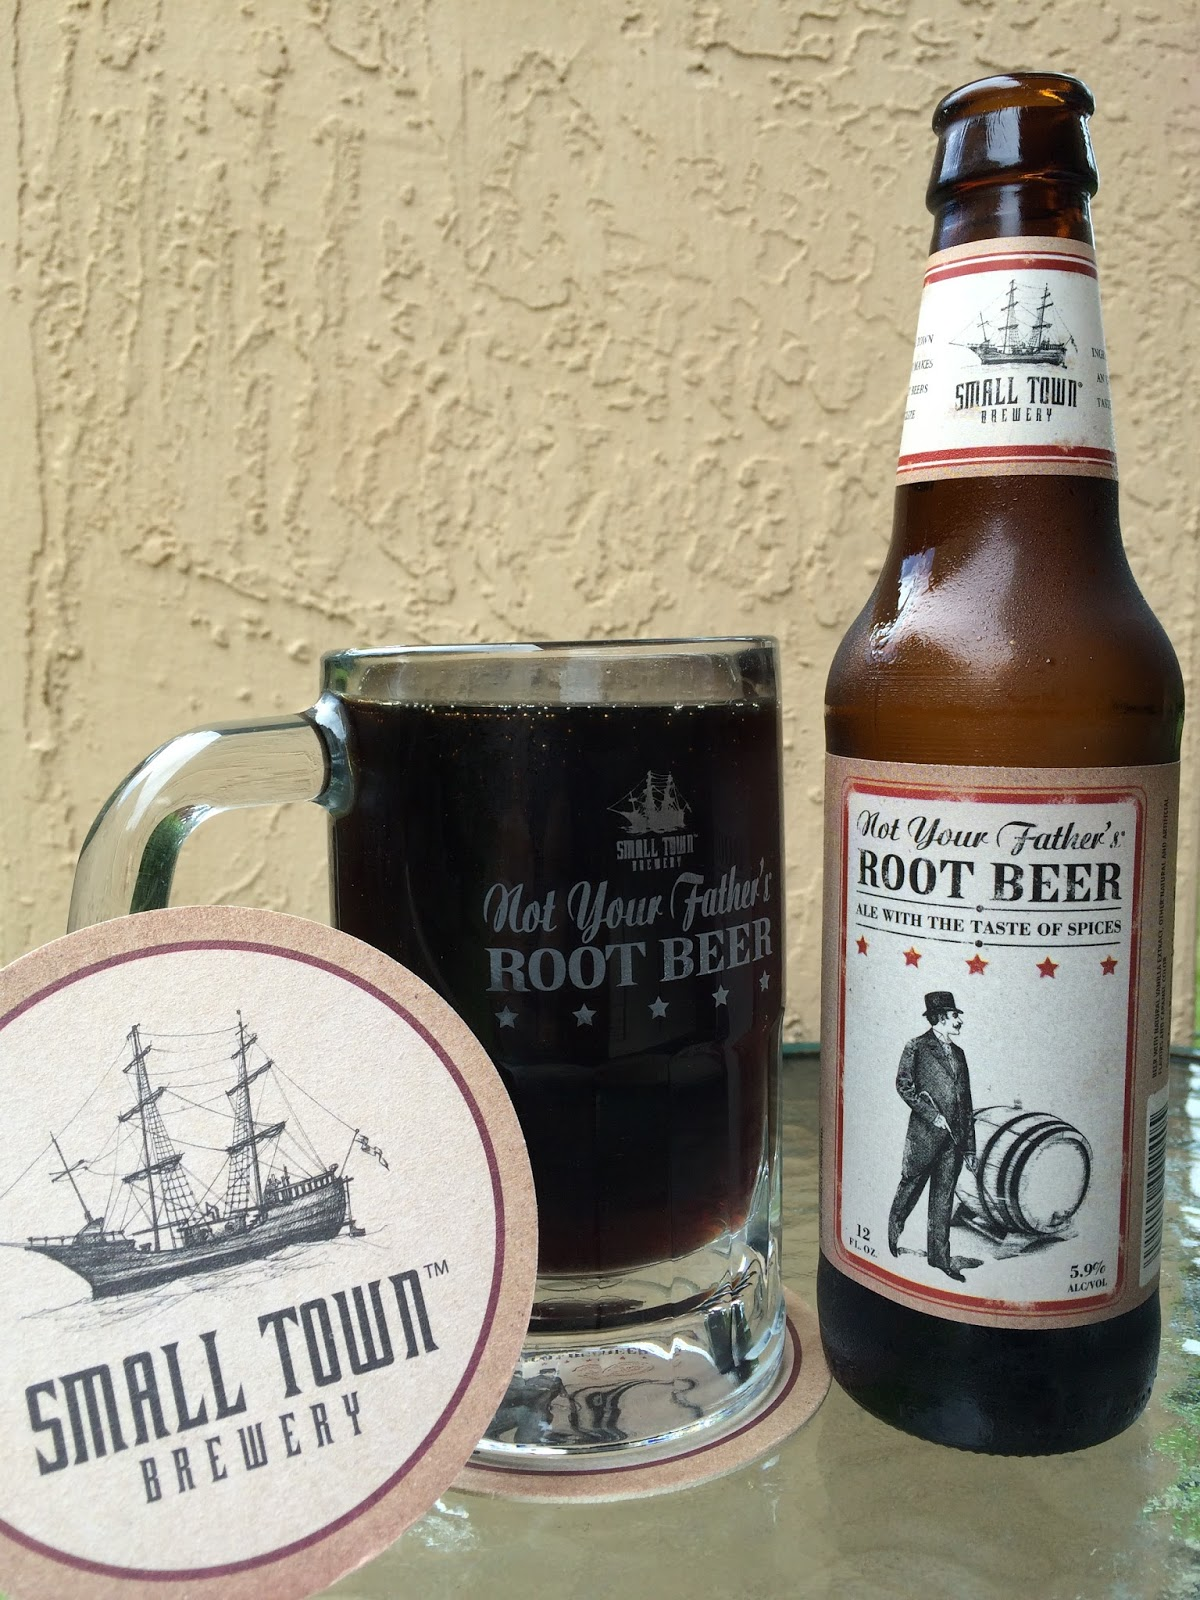 Where to buy not your father s root beer - Sweet For Sure And One Bottle Certainly Enough The Other Bottle However Will Meet Its Match With A Scoop Of Vanilla Ice Cream In The Coming Days